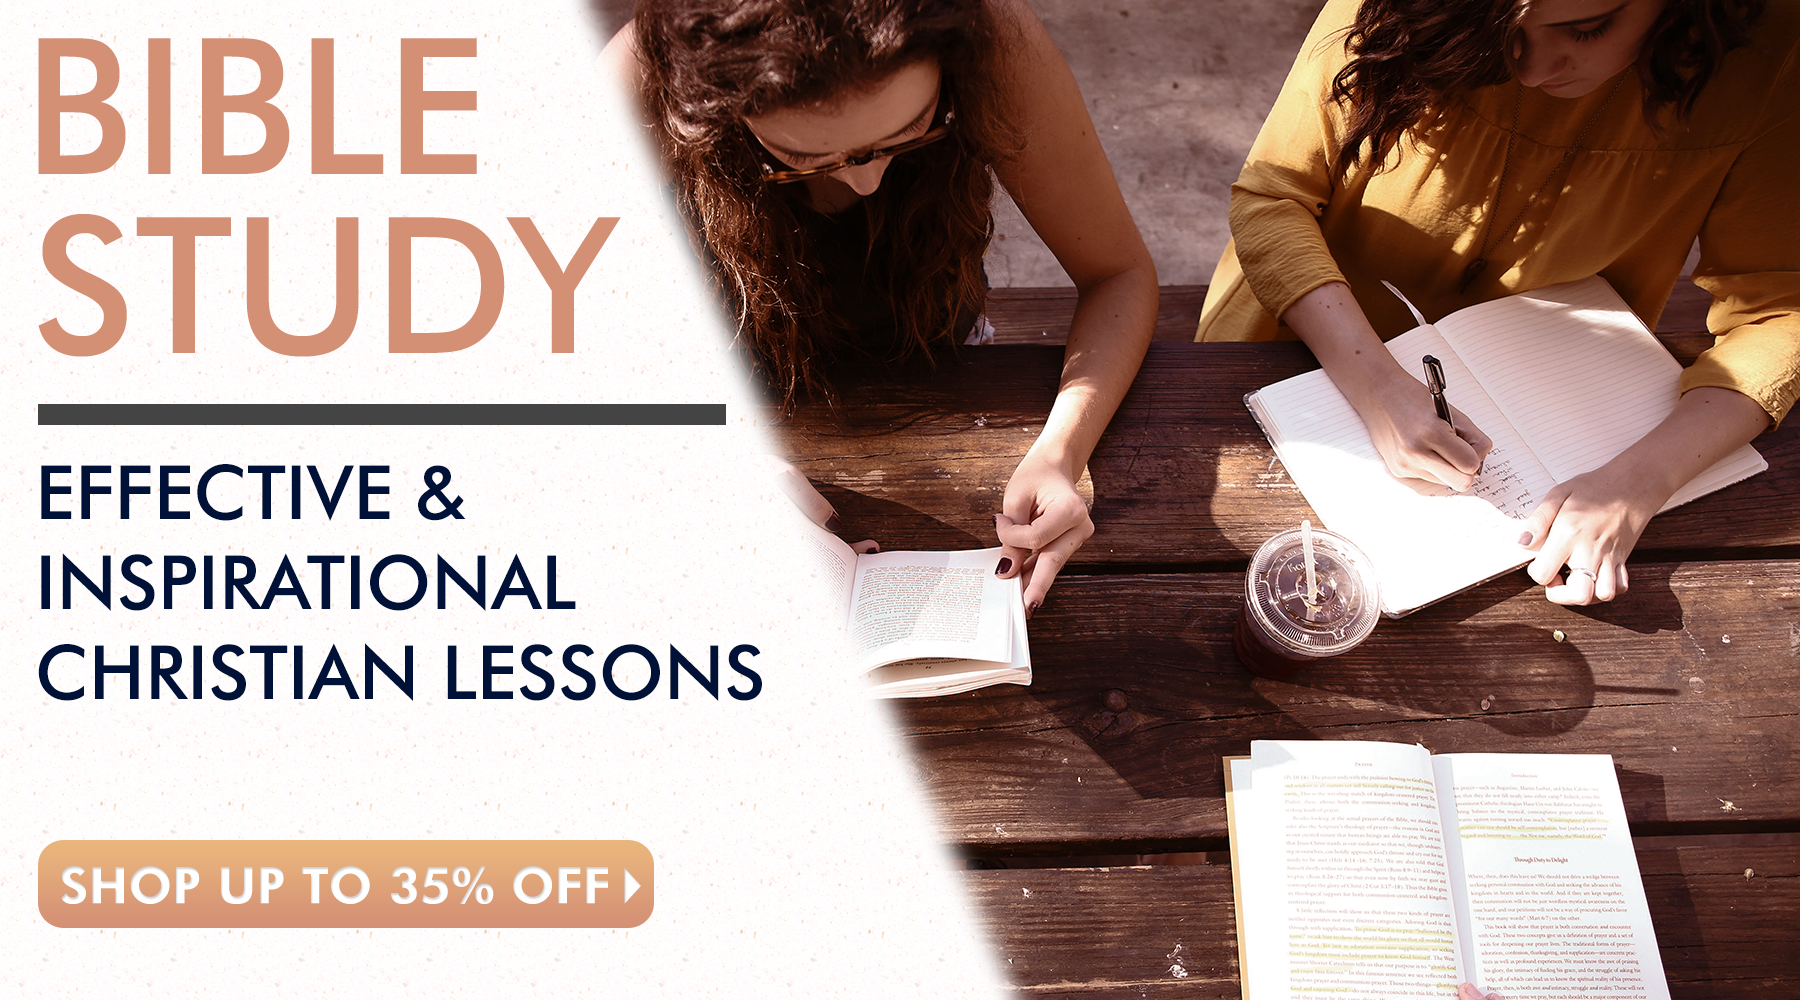 Bible Study Resources Sale